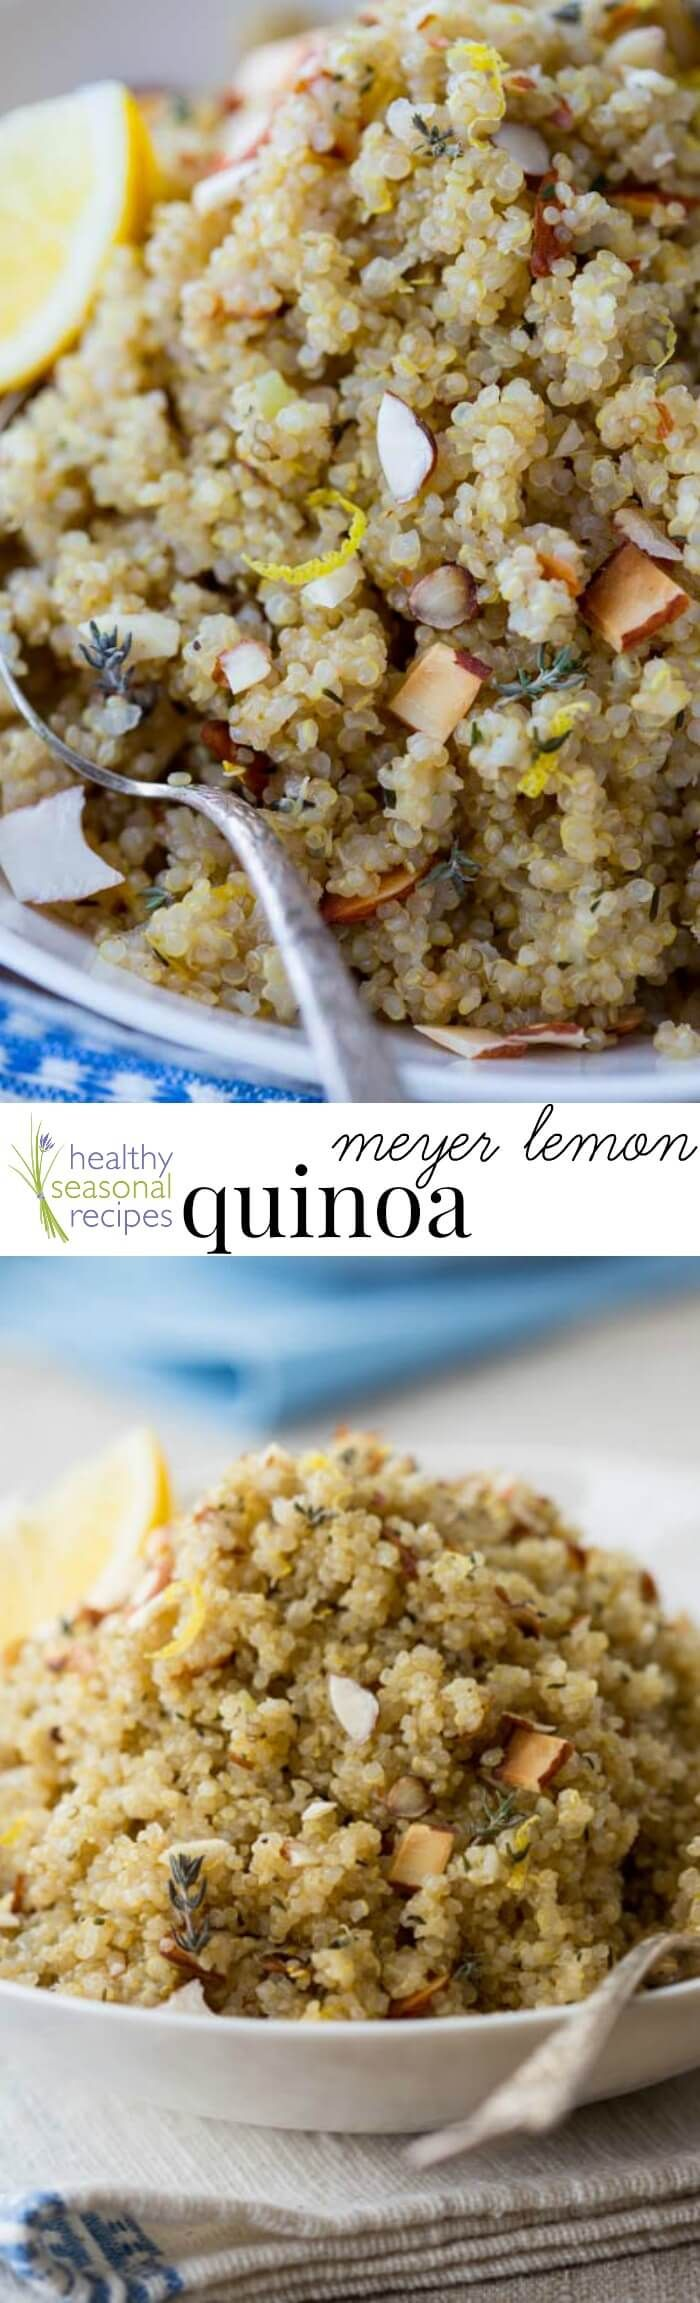 Easy Meyer lemon quinoa with coconut oil, shallot and thyme, with a touch of honey. An easy recipe to get on the stove (only 12 minutes of a[..]